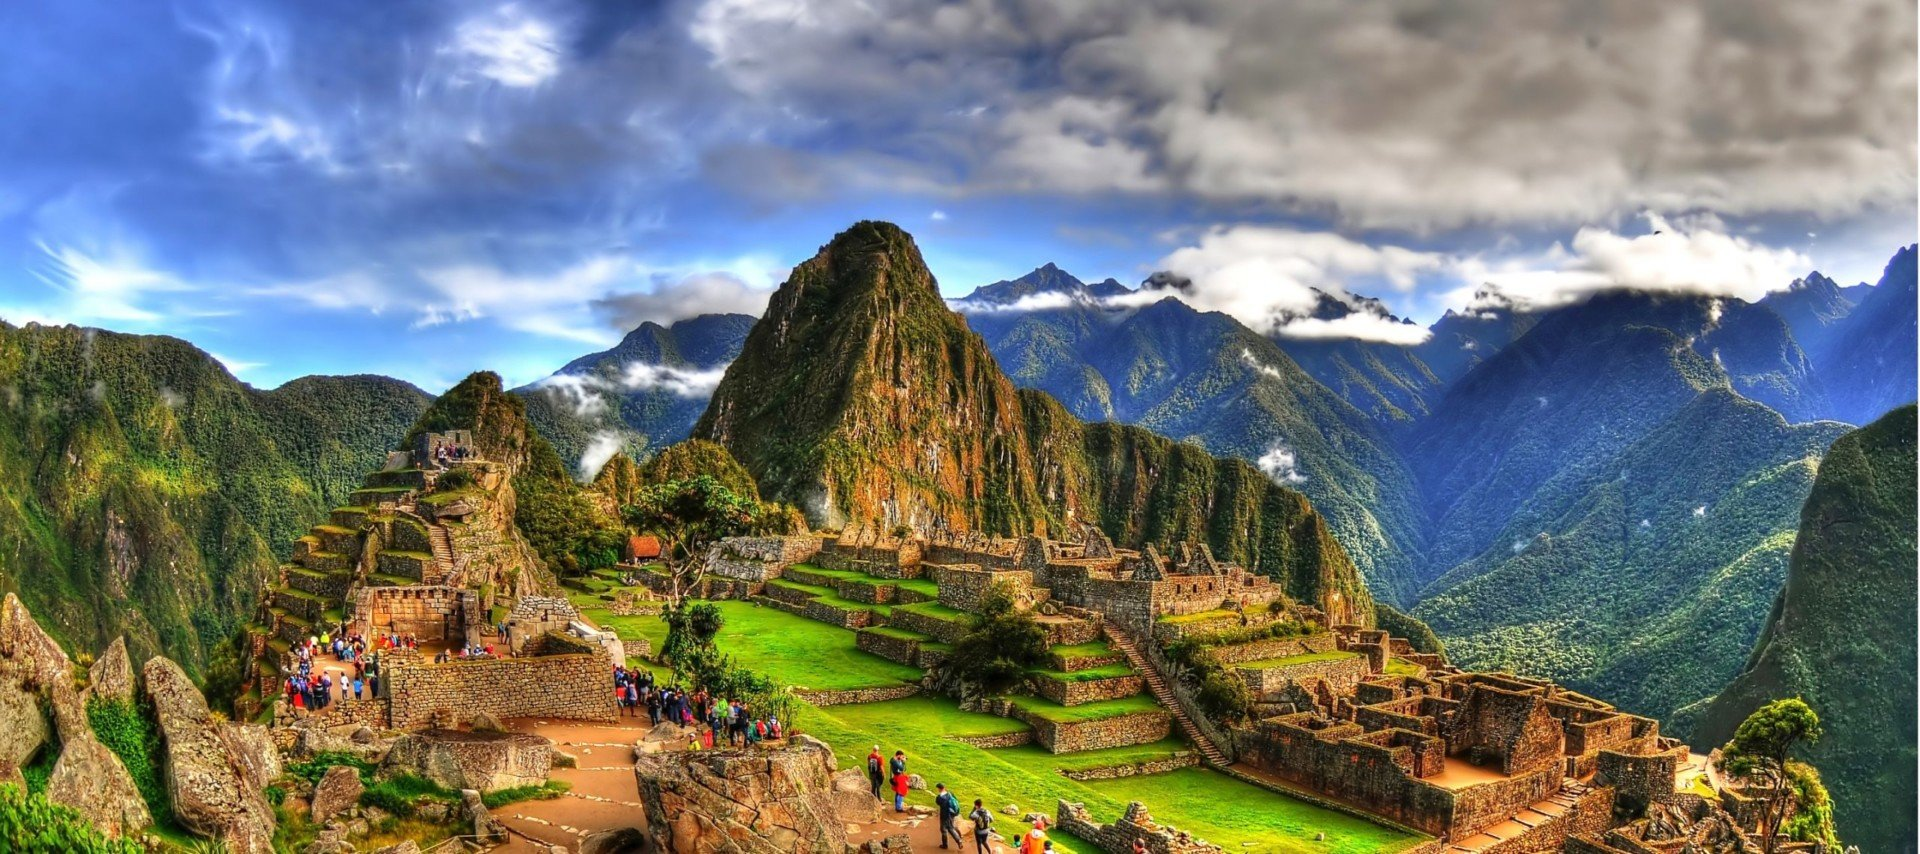 Views of mountains that travelers see on one of our Machu Picchu tours